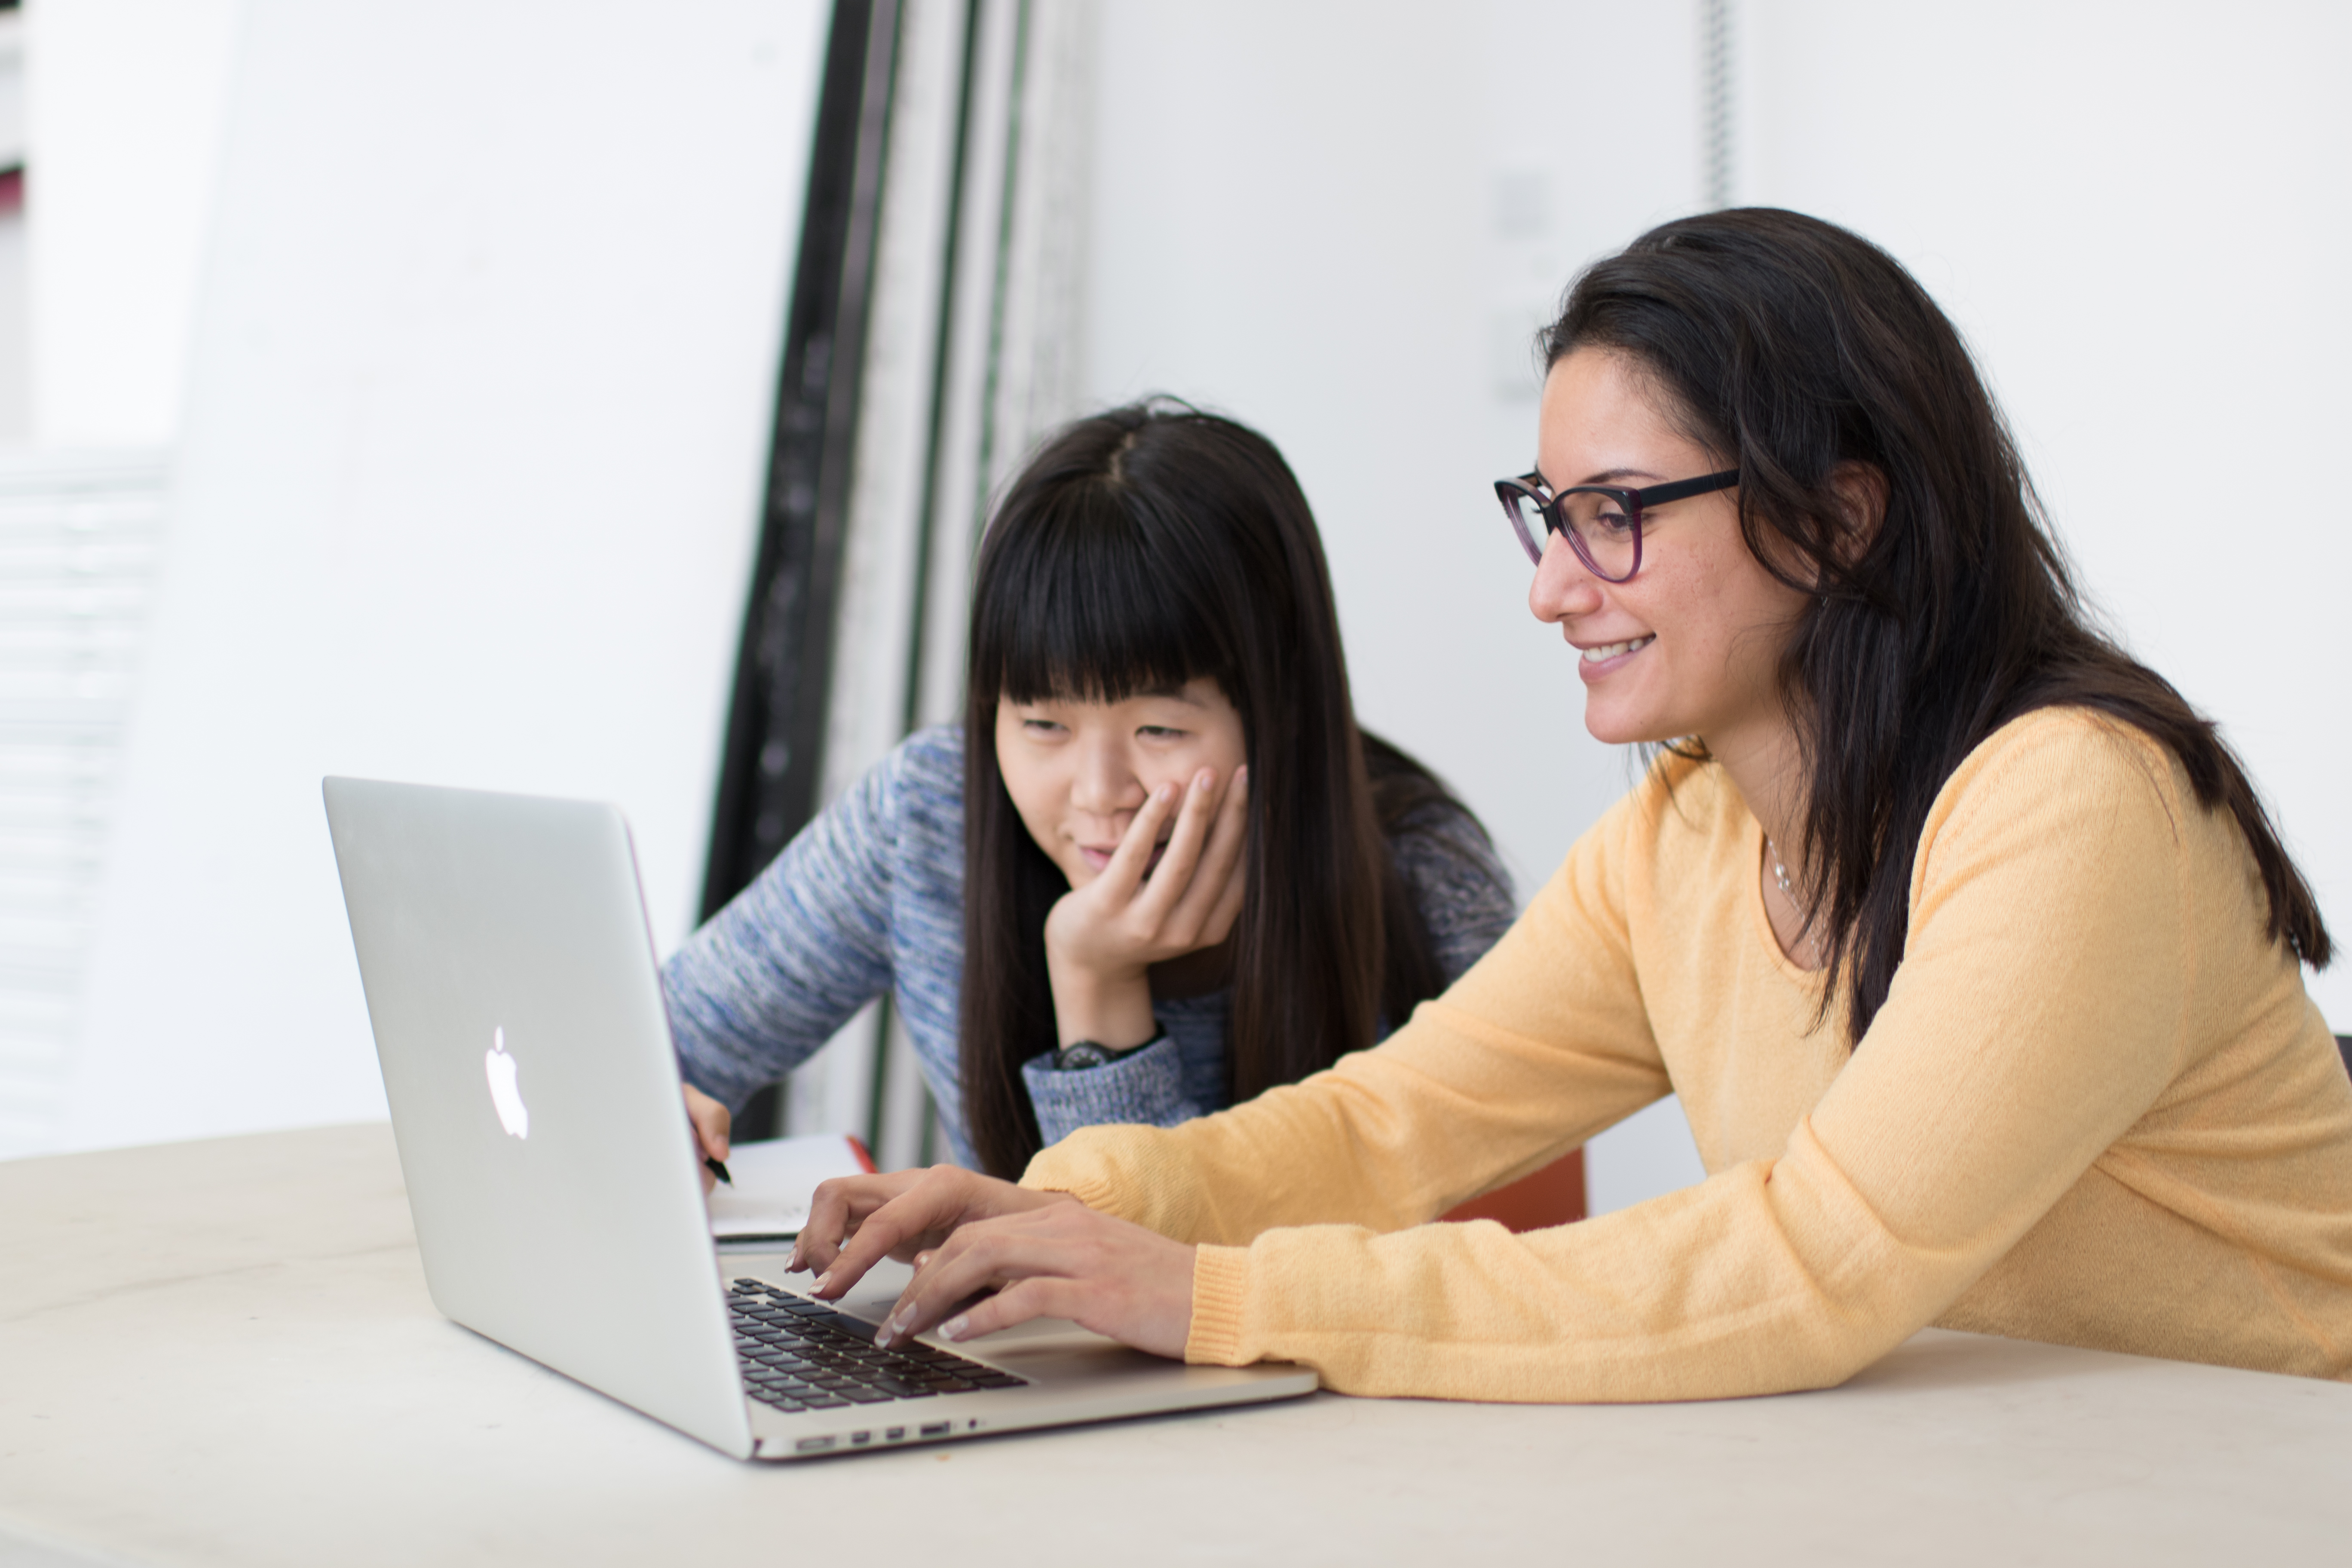 Students at a laptop